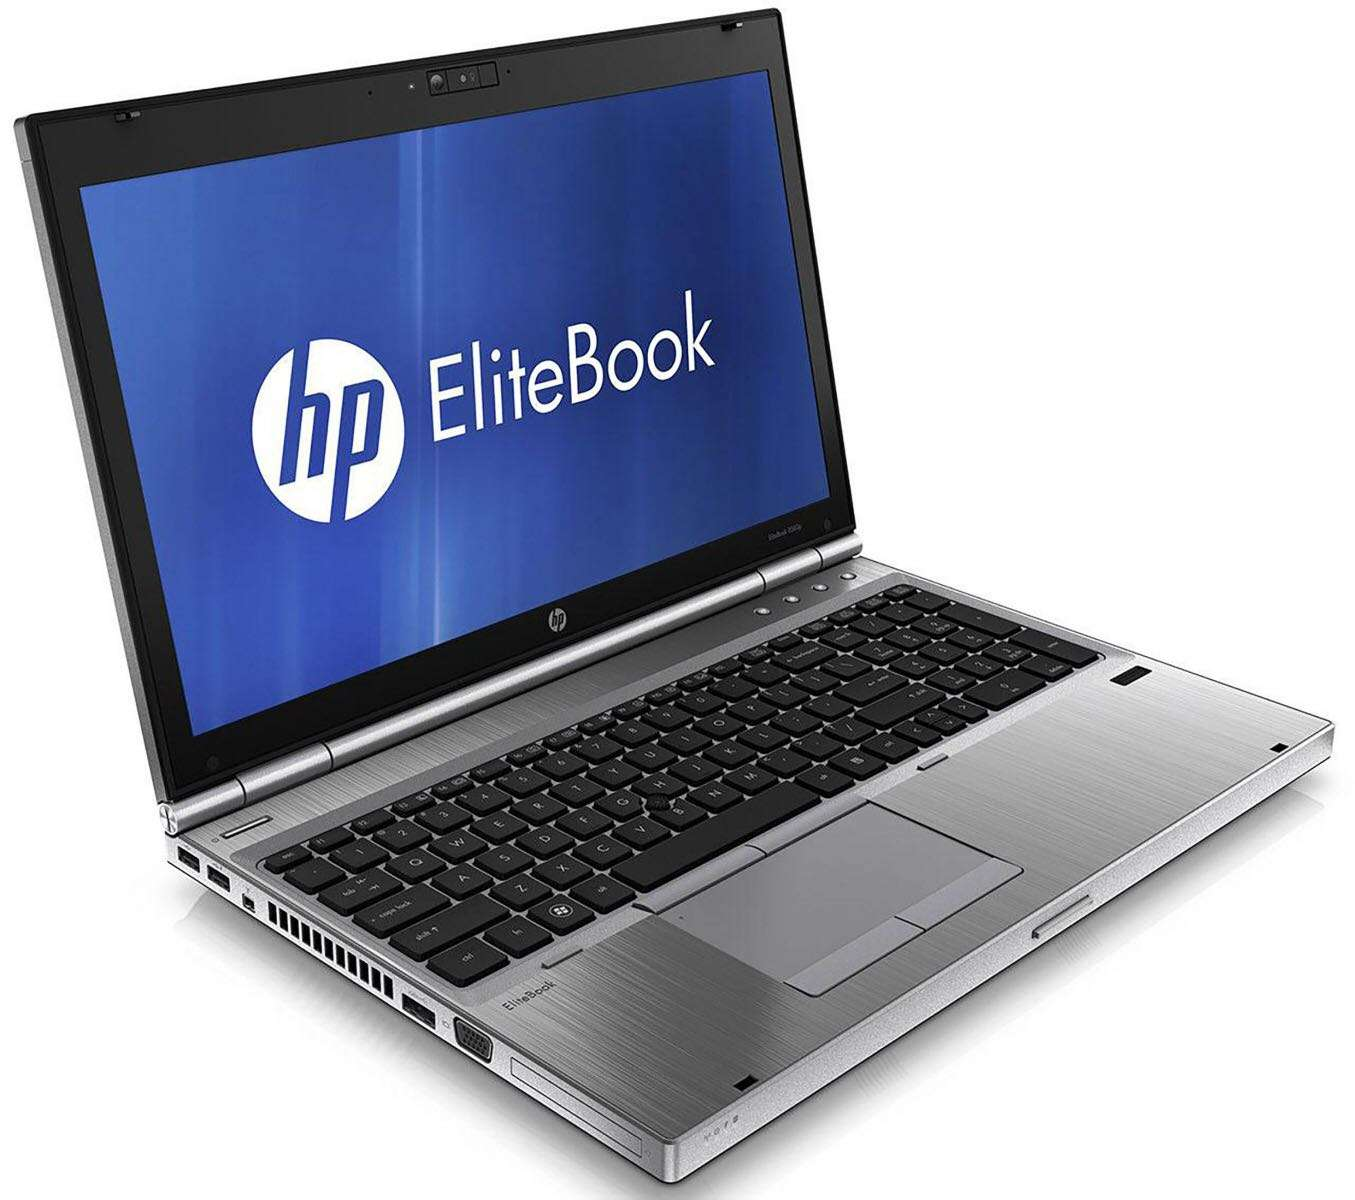 HP EliteBook 8570p (Core i7-3520M, RAM 4GB, HDD 320GB, VGA 1GB ATI Radeon HD 7570M, 15.6 inch)